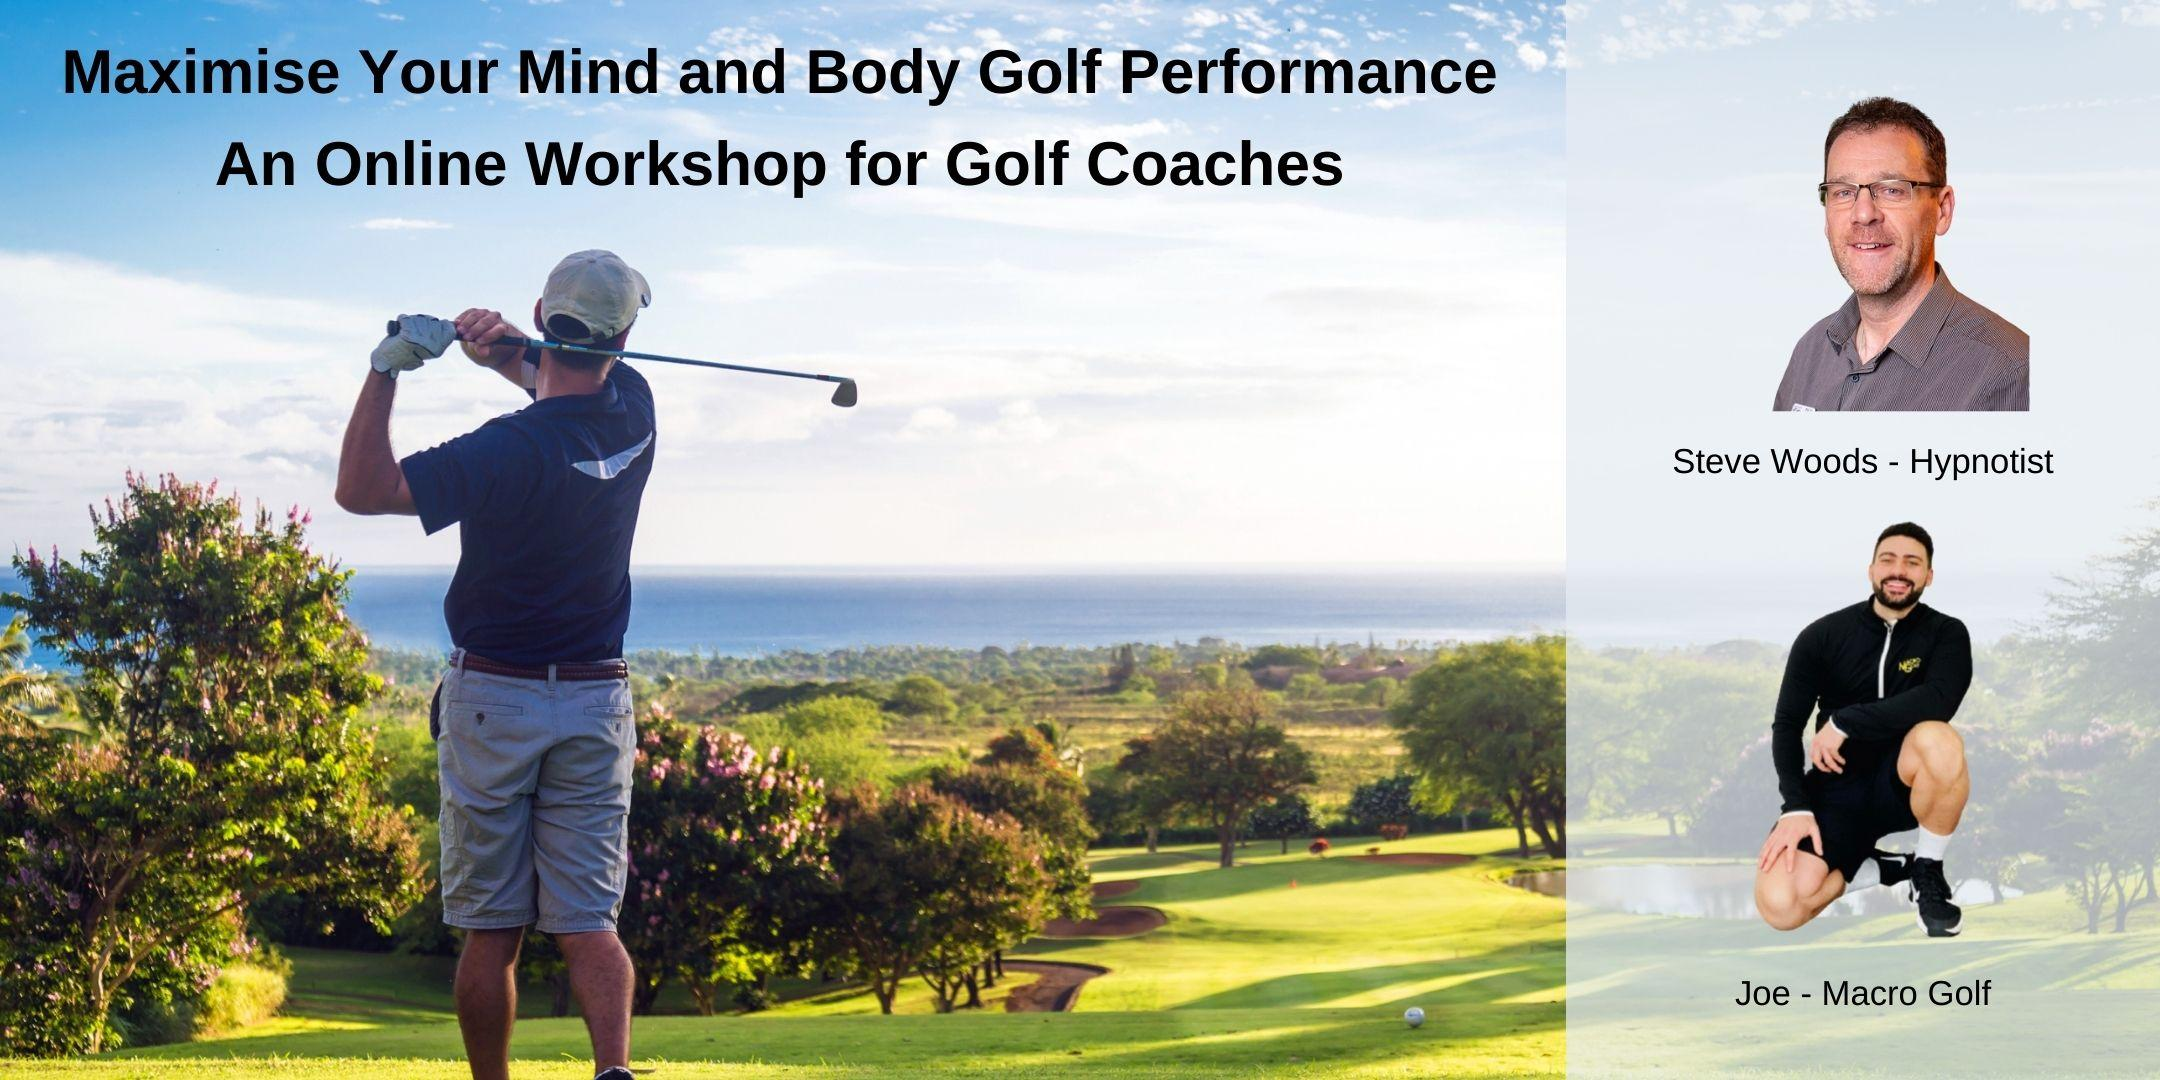 Maximise Your Mind and Body Golf Performance (For Coaches) post thumbnail image